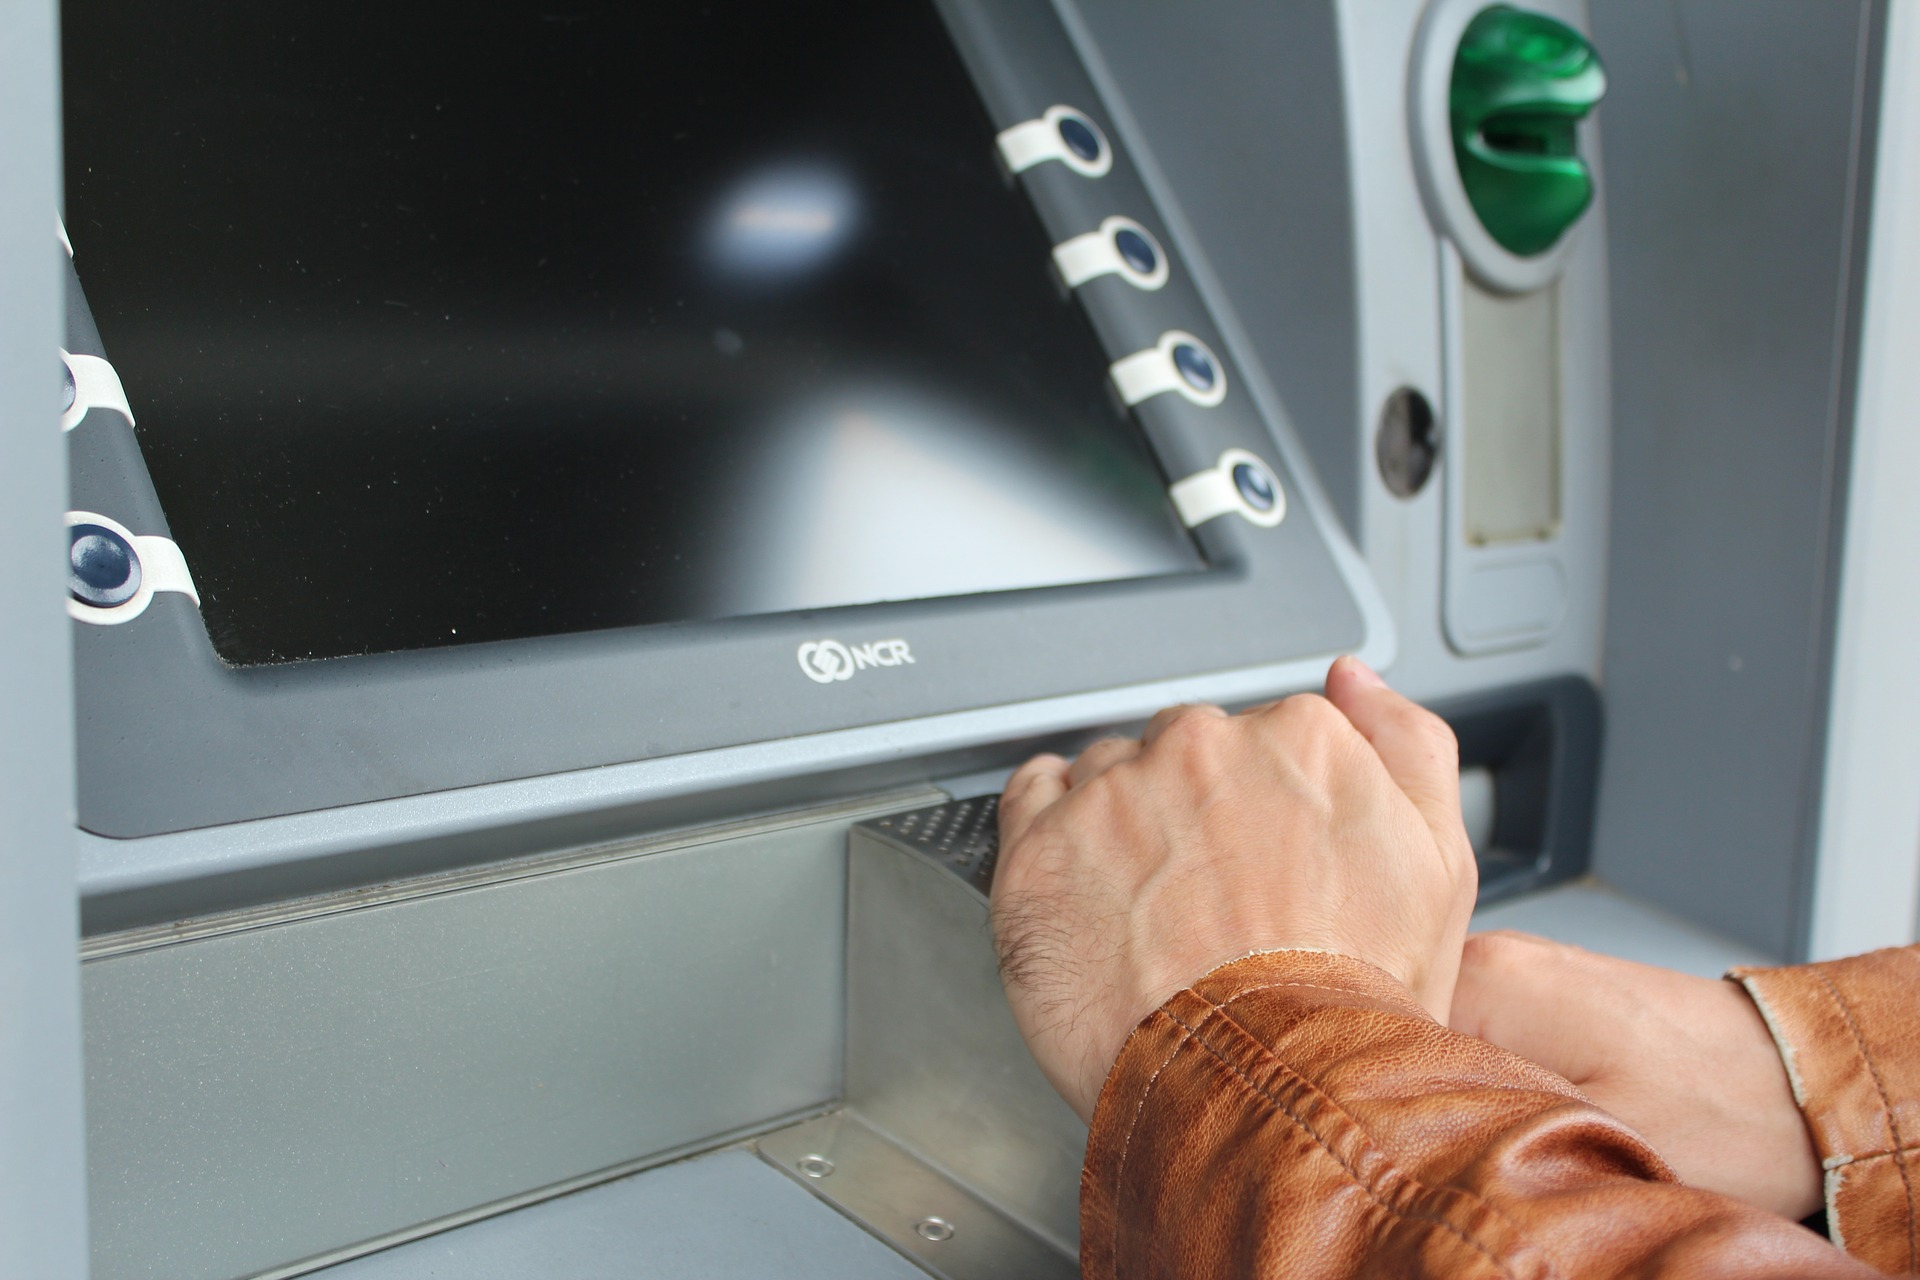 A person concealing their PIN entry at an ATM